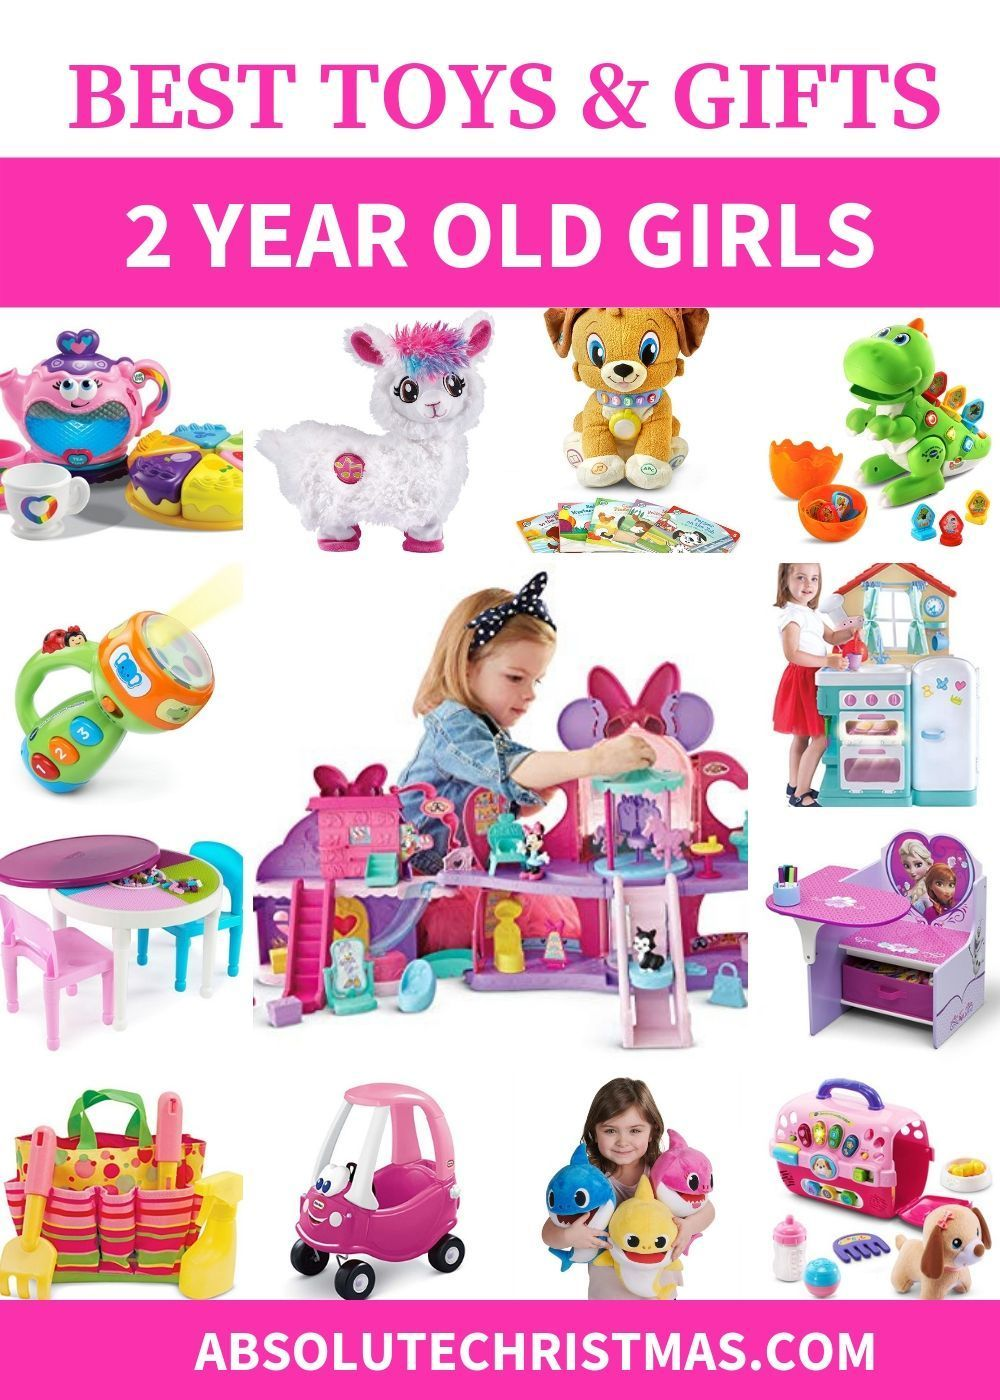 Best Toys & Gifts For 2 Year Old Girls 2020 (With images